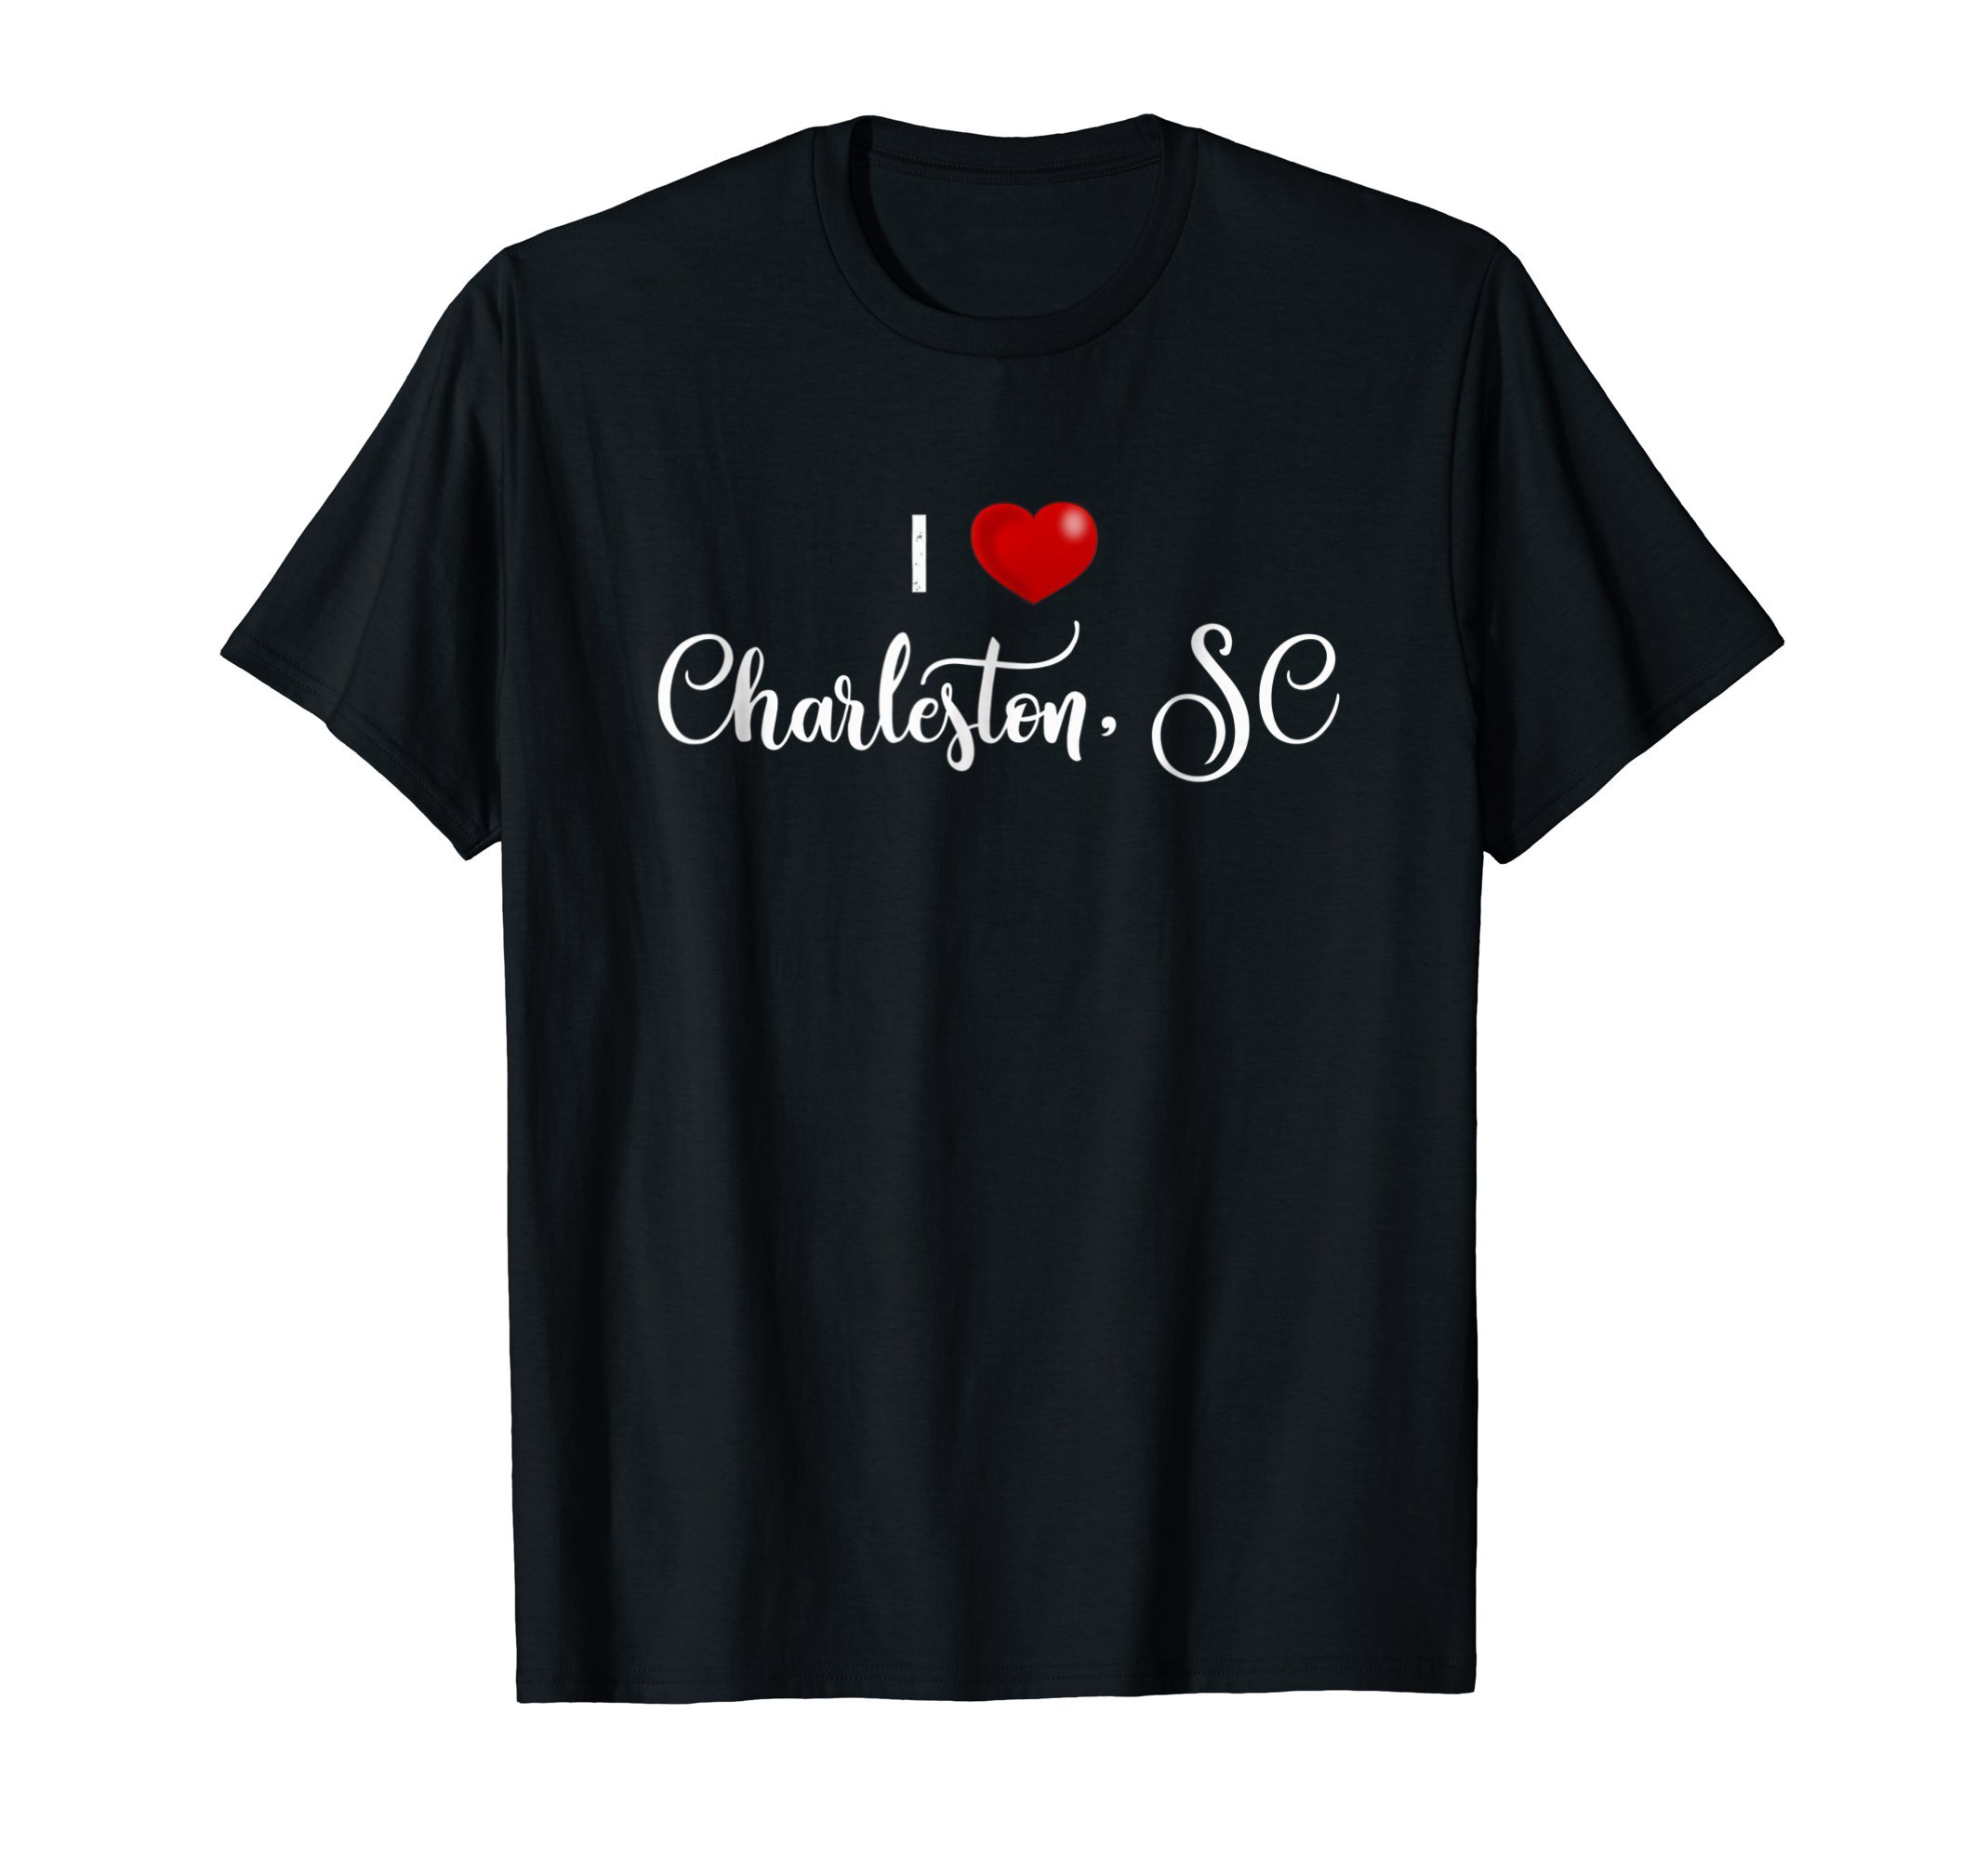 I Love Charleston SC Shirt for Women Men